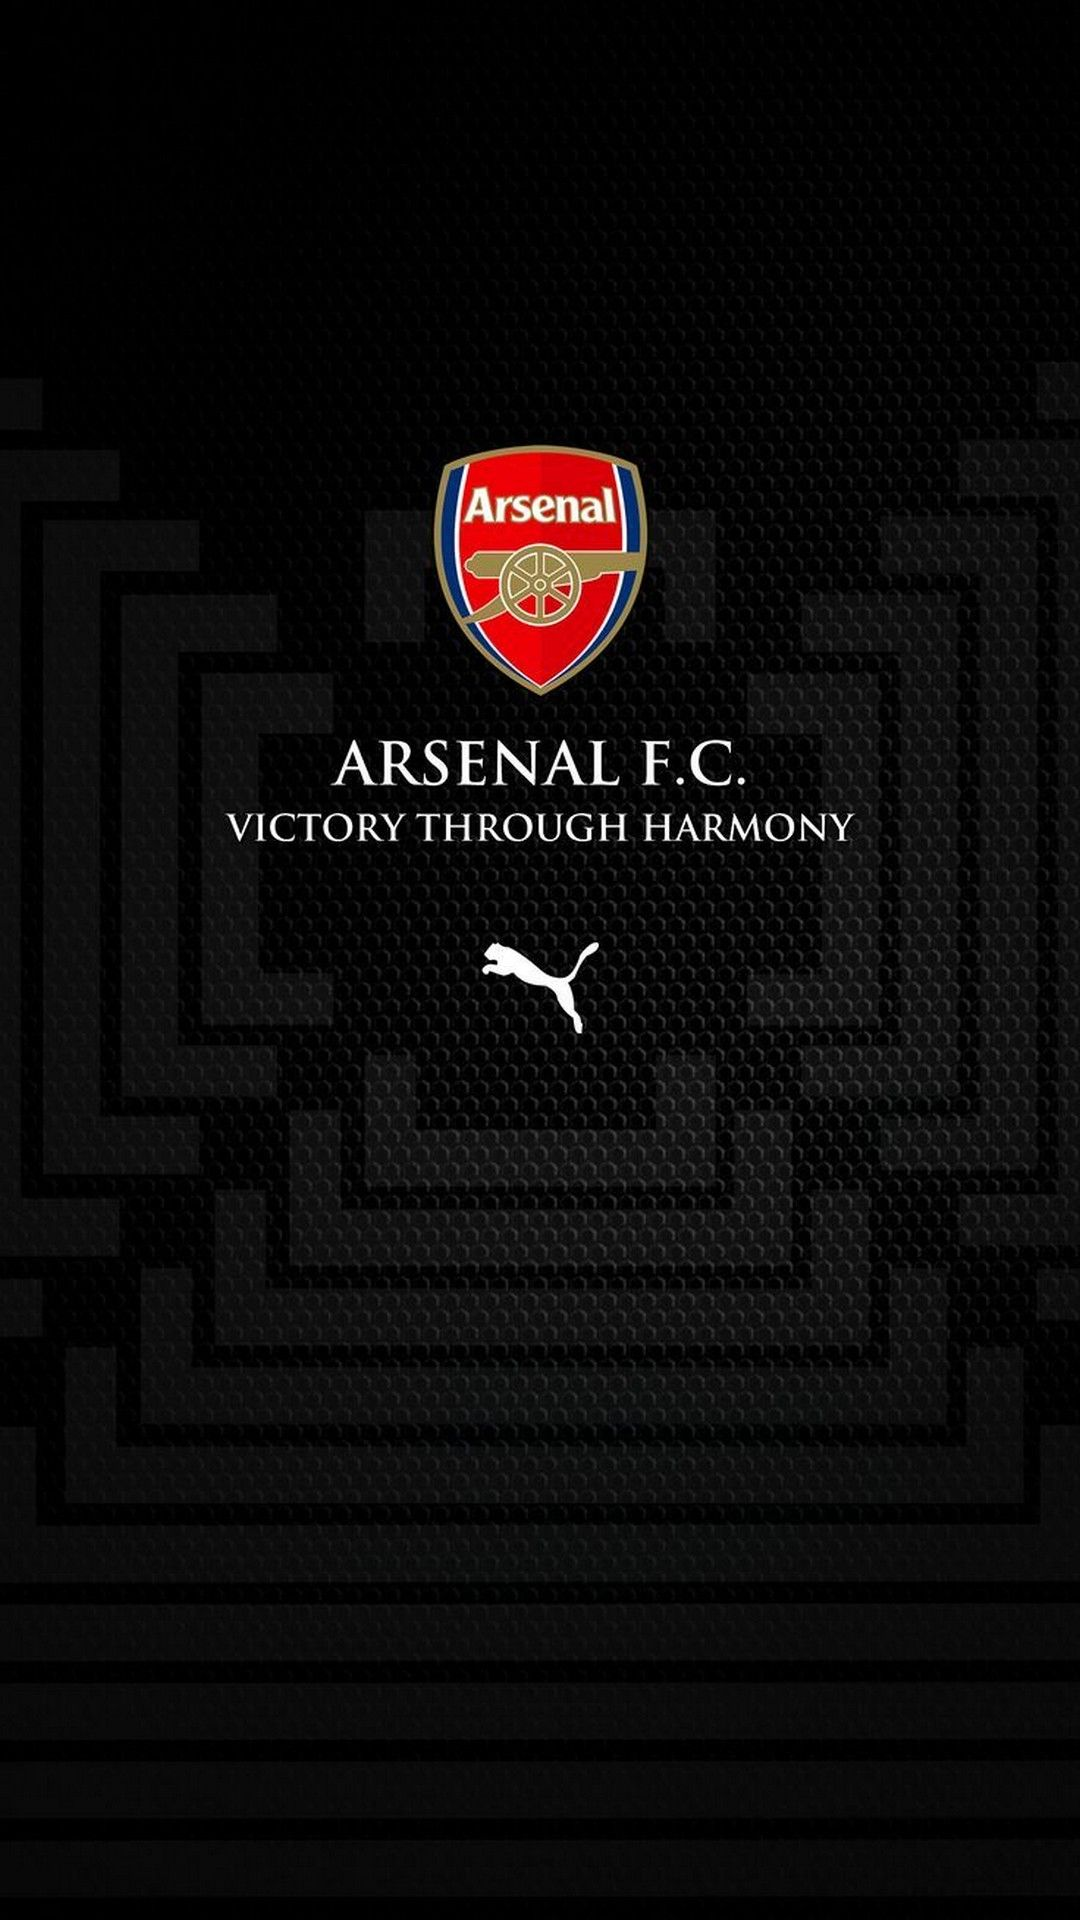 Arsenal Fc 3d Wallpapers Arsenal Fc Wallpaper Iphone Iphonewallpapers Arsenal